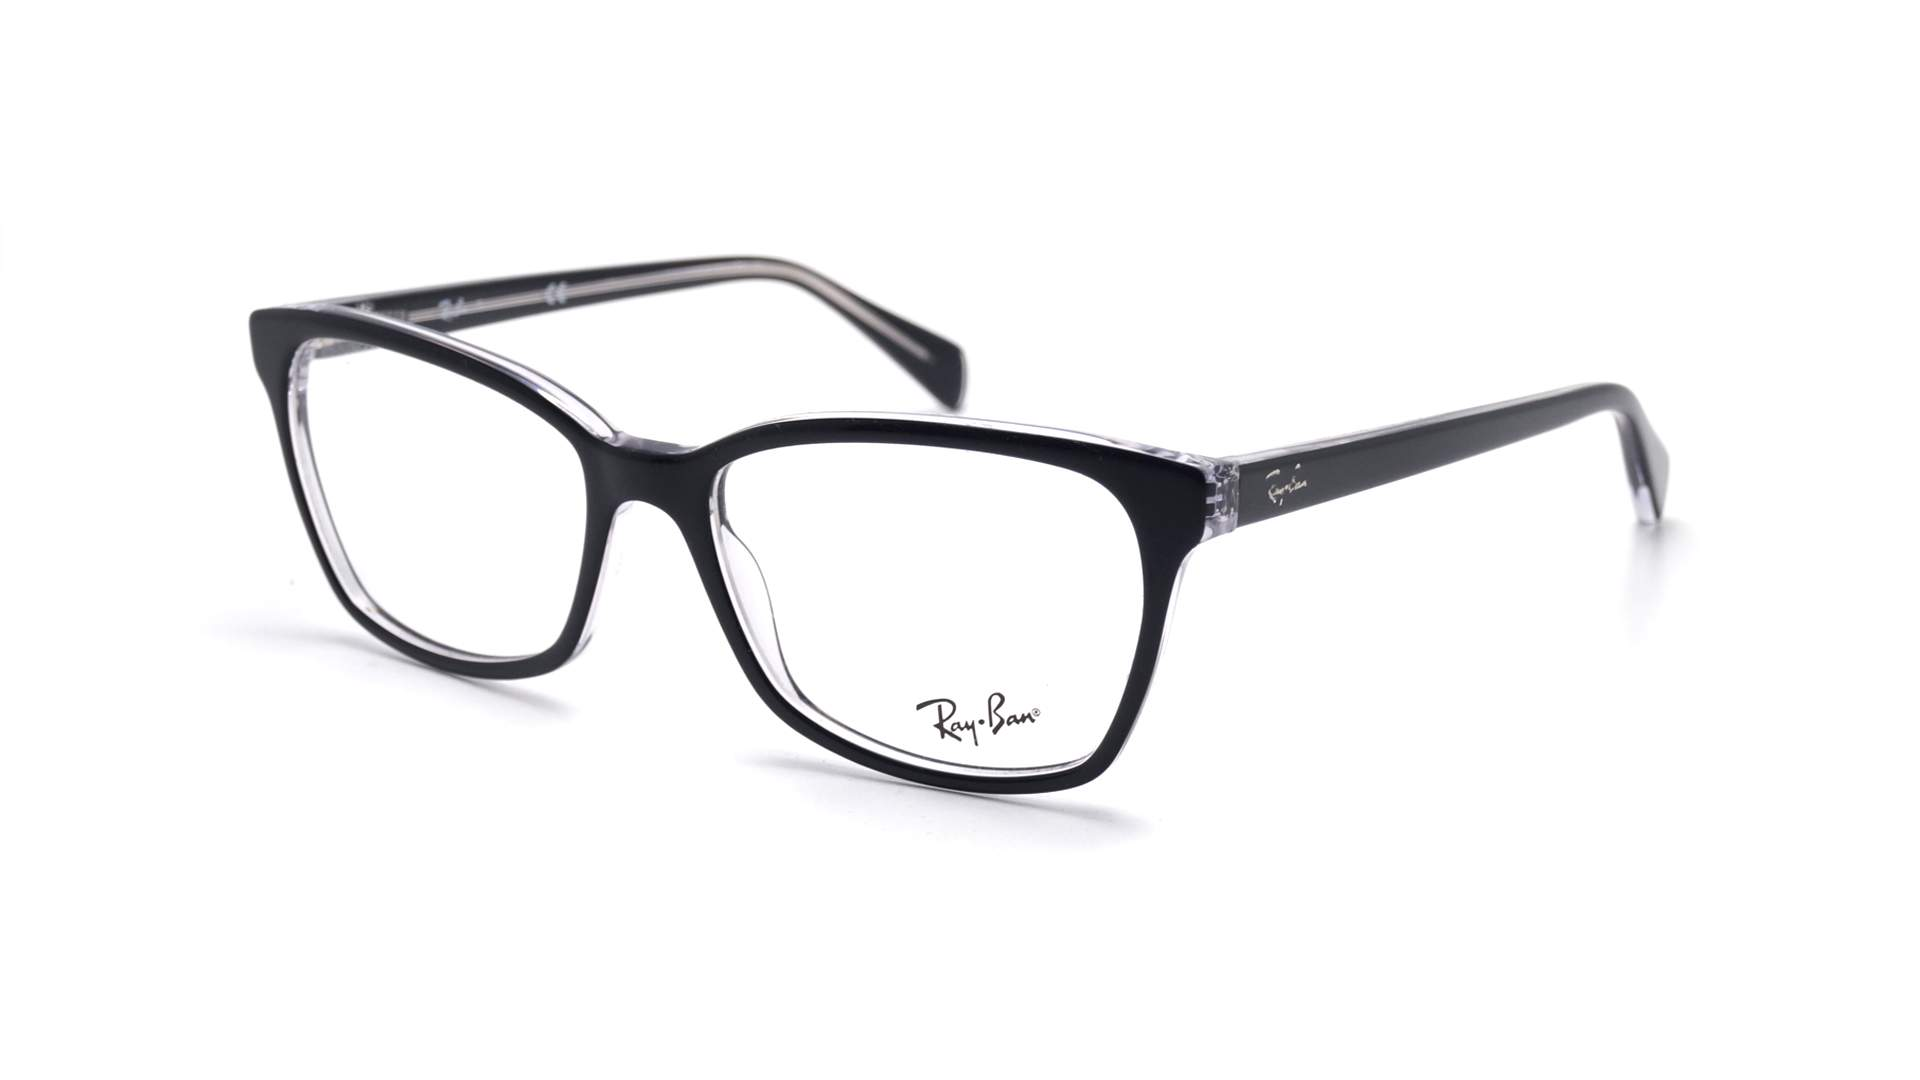 bf5543e9e3 Eyeglasses Ray-Ban RX5362 RB5362 2034 54-17 Black Large